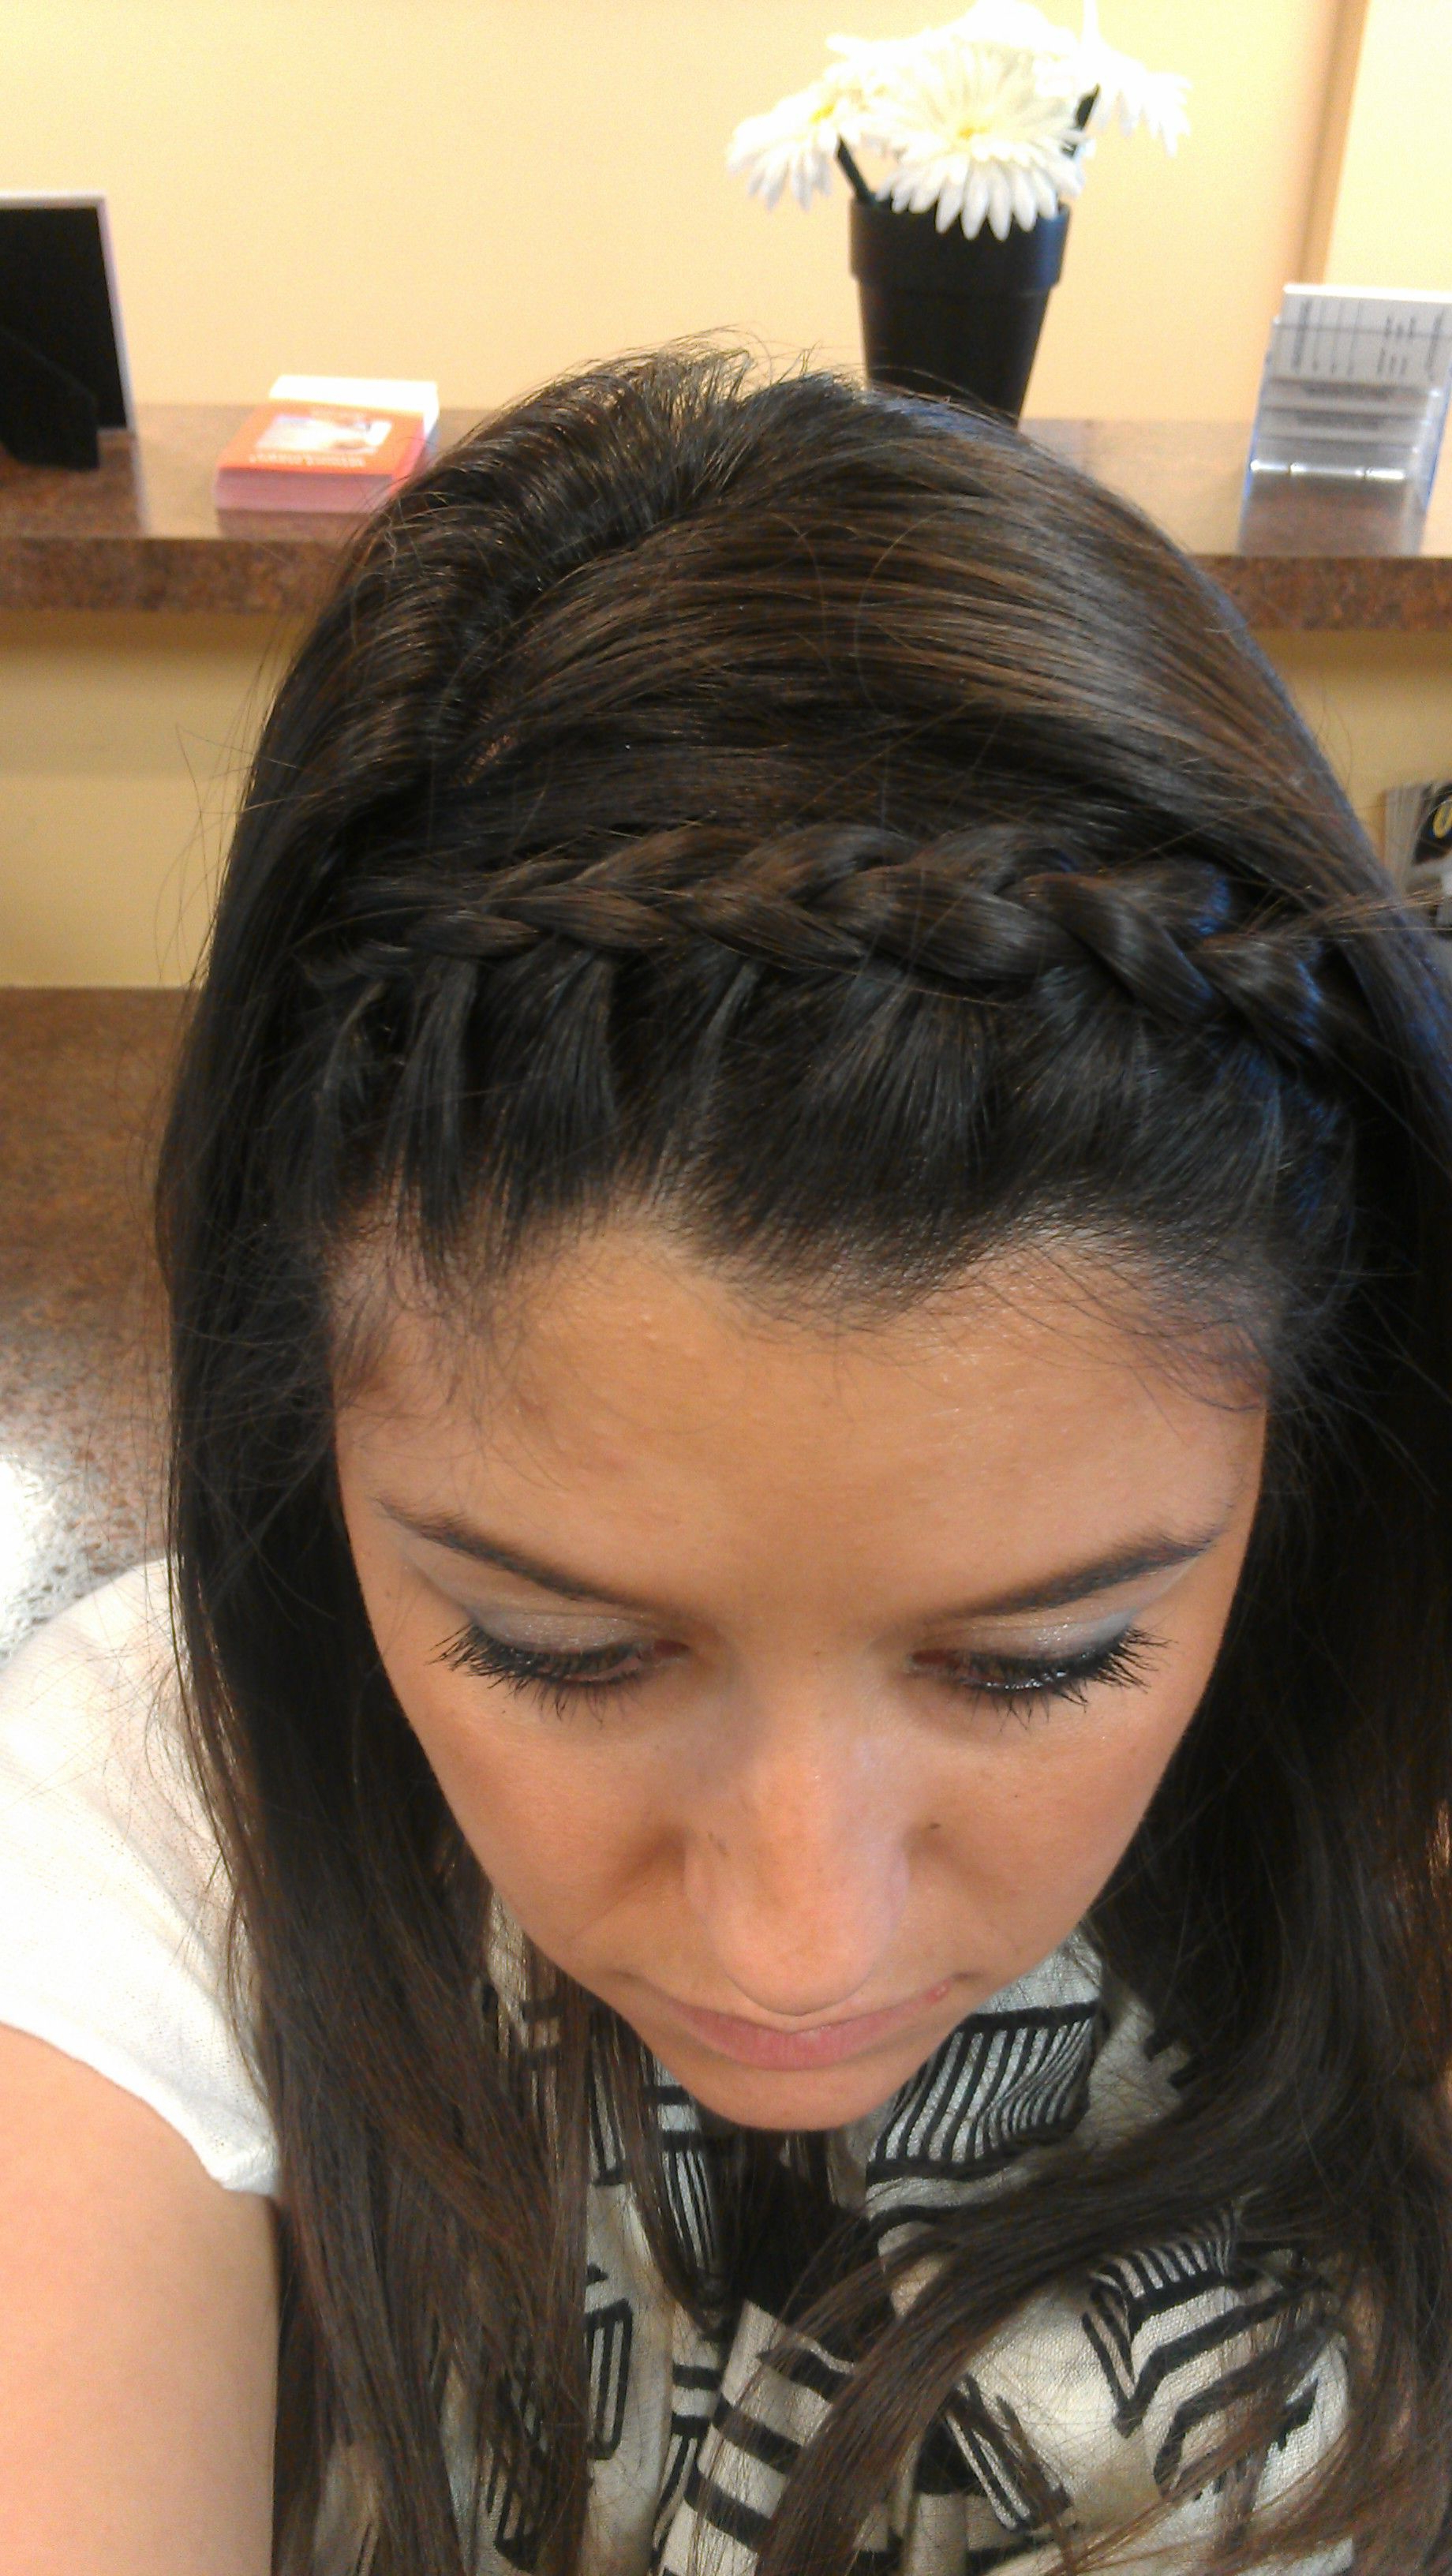 French Braid Headband Going To Do This W My Bangs Then Have In Latest Braided Headband Hairstyles For Curly Hair (View 10 of 20)